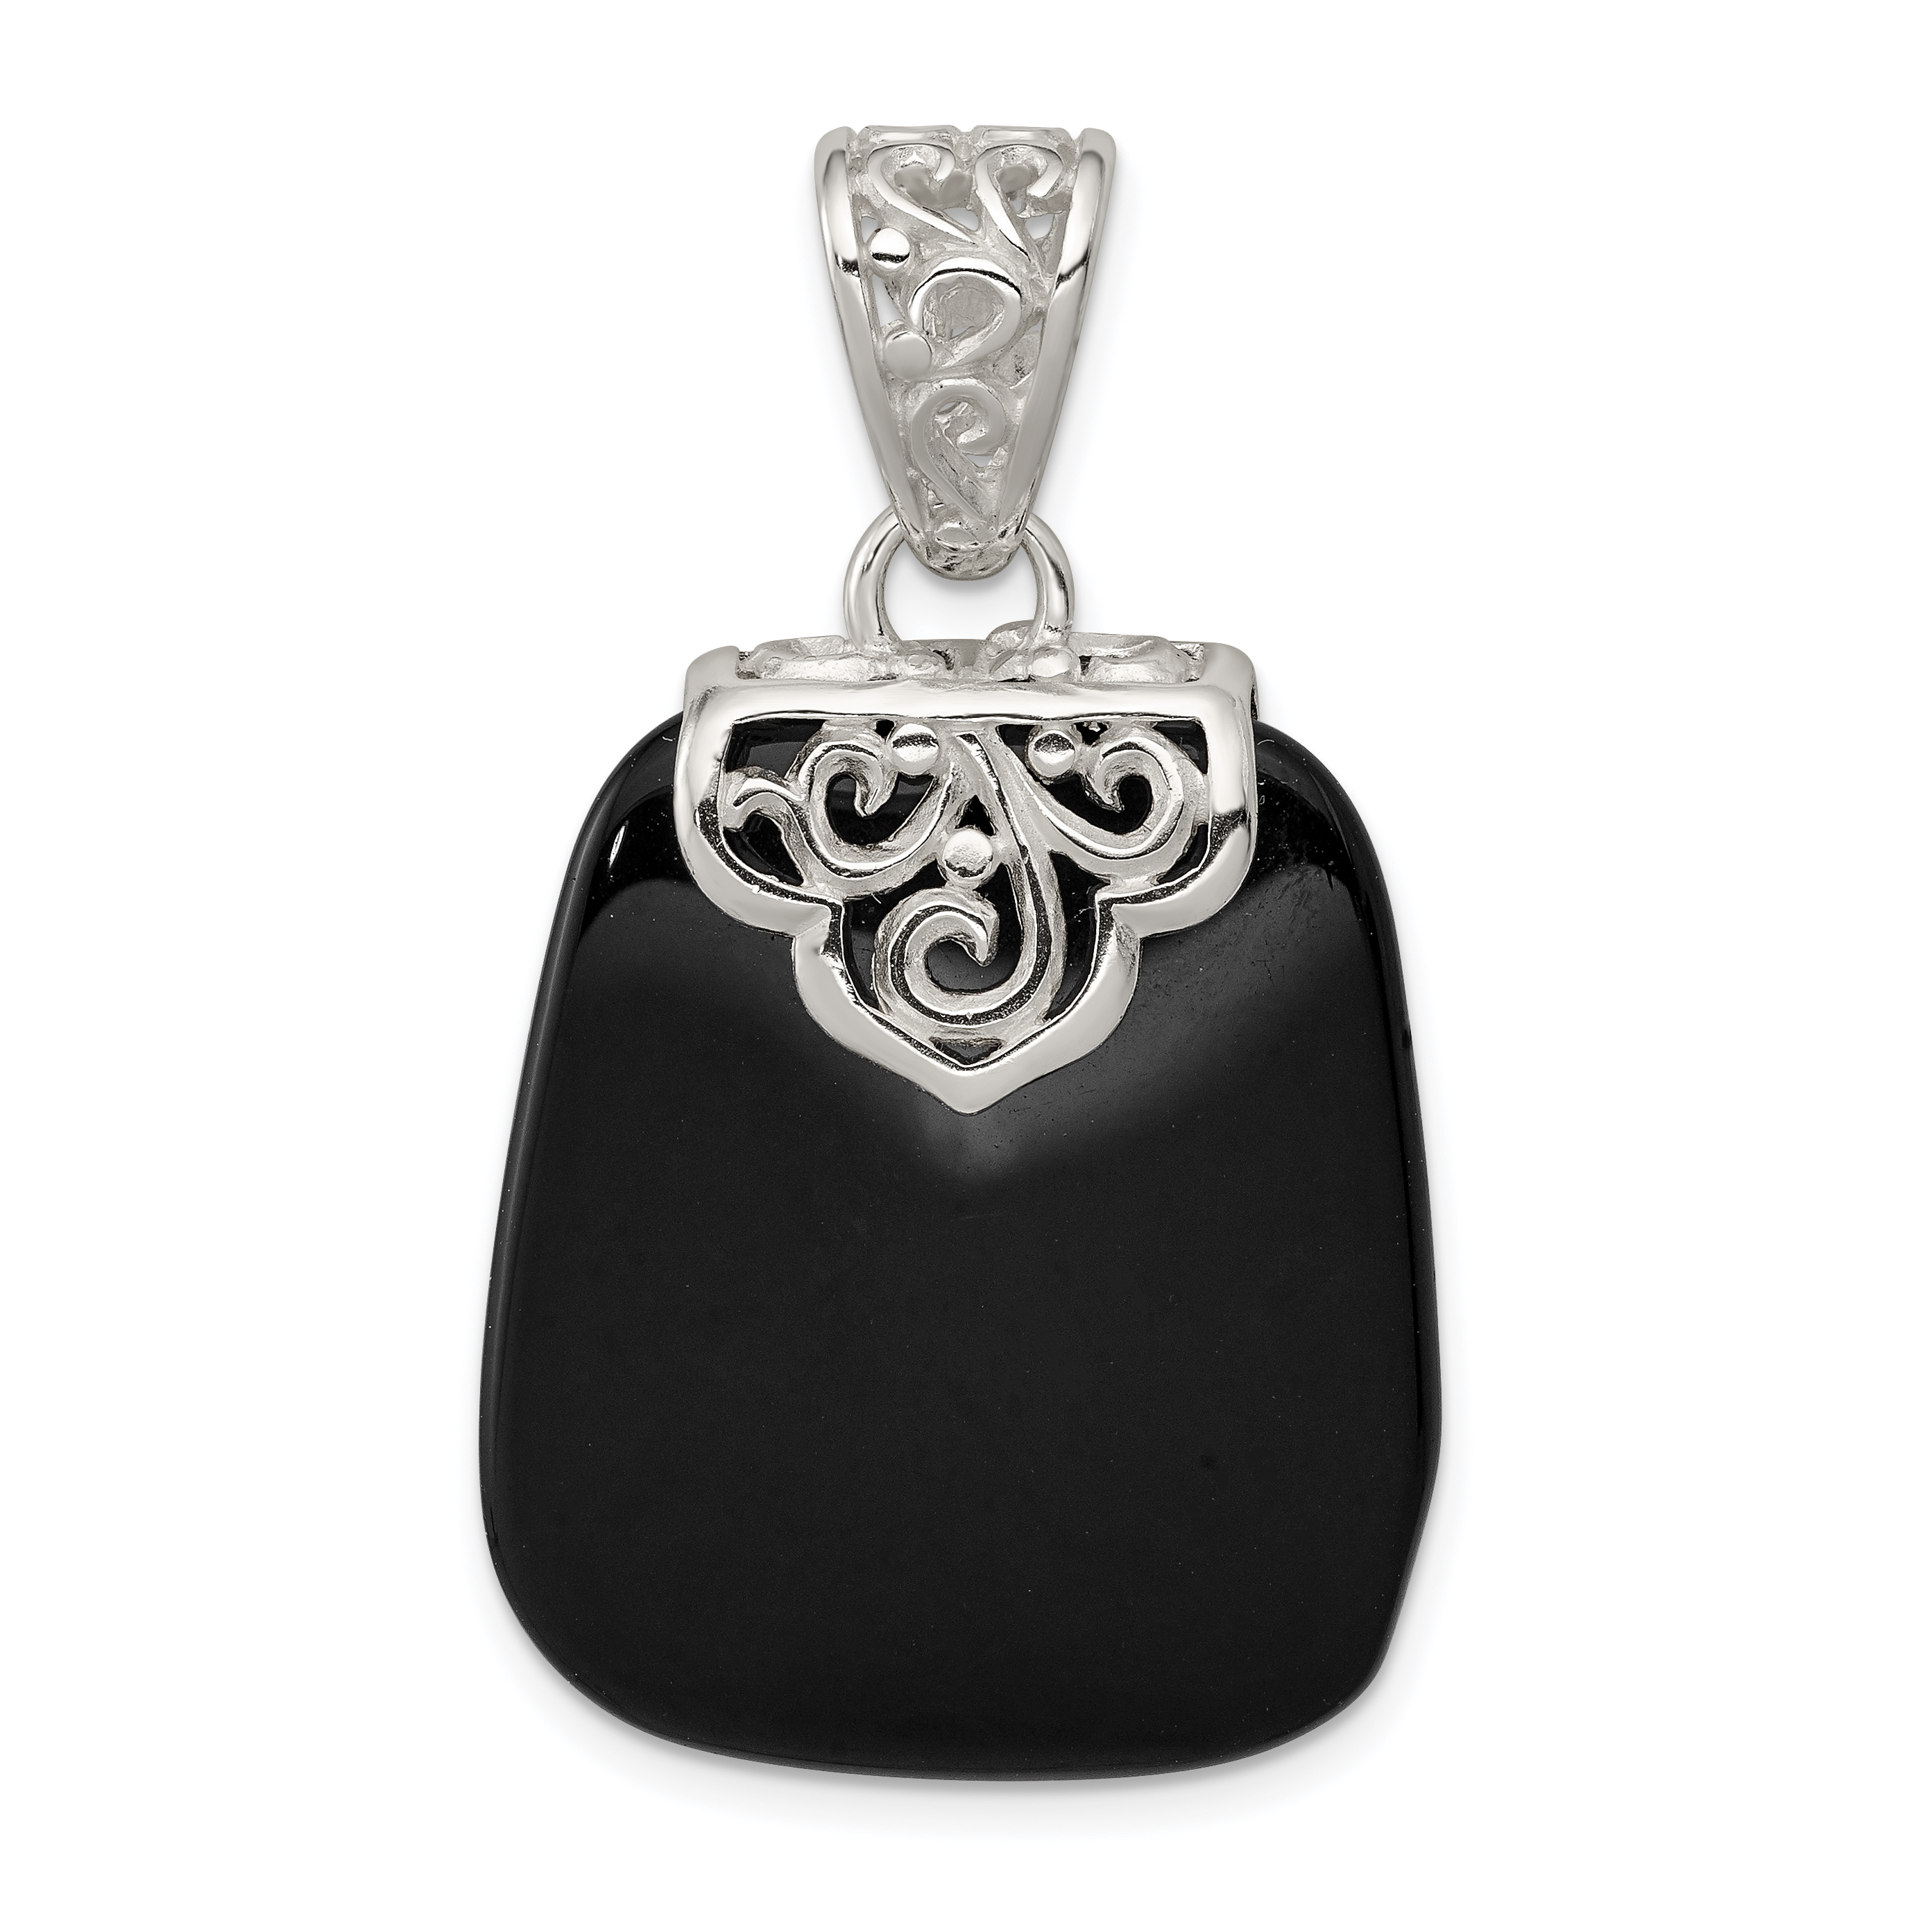 925 Sterling Silver Black Onyx Pendant Charm Necklace Natural Stone Fine Jewelry Gifts For Women For Her - image 2 de 2